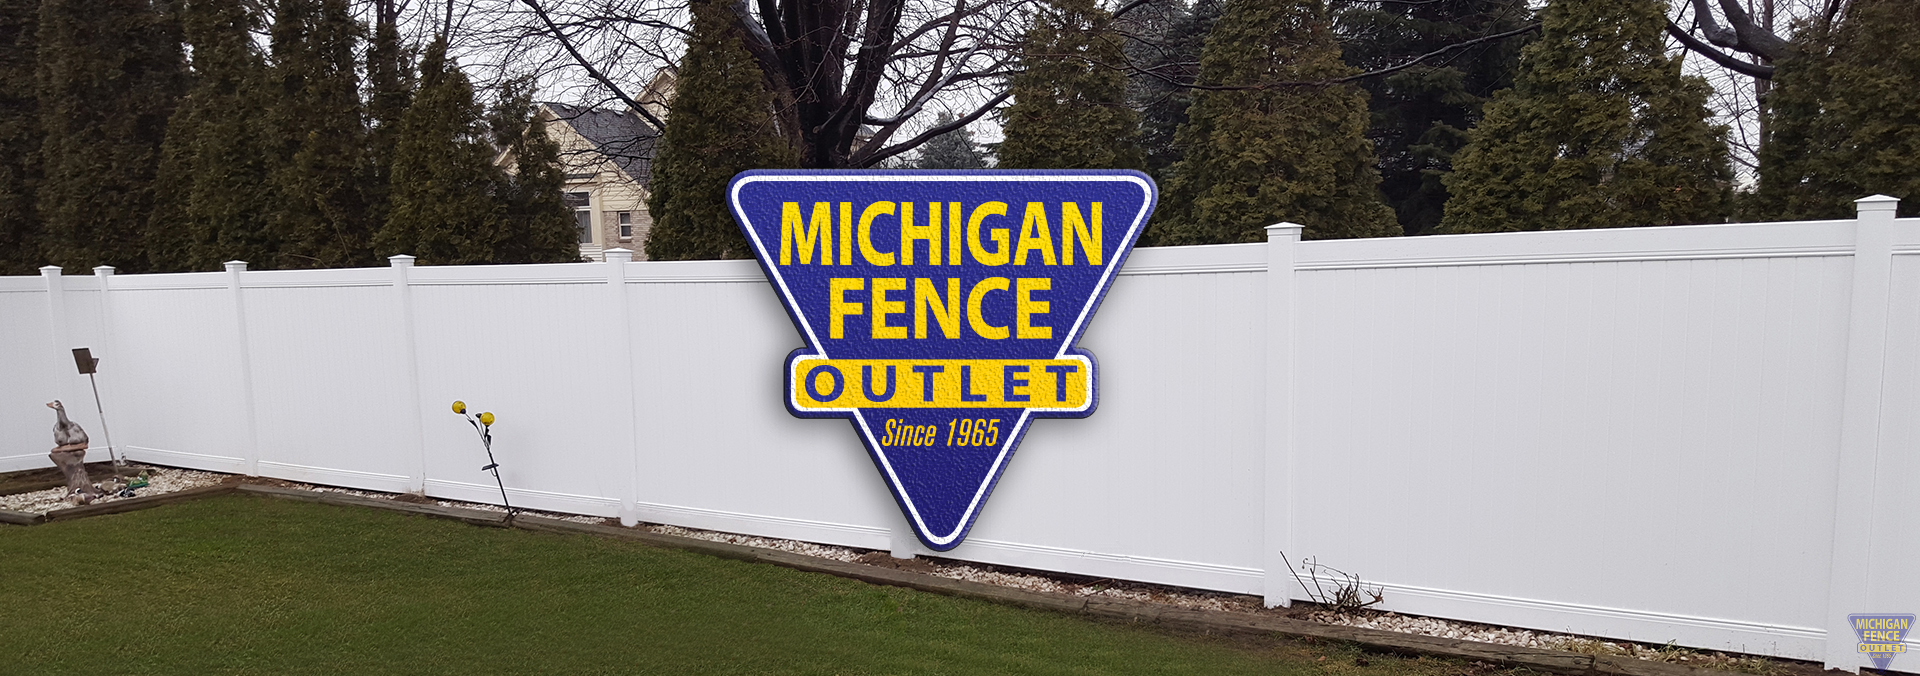 Michigan Fence Outlet Logo on a White Vinyl Fence